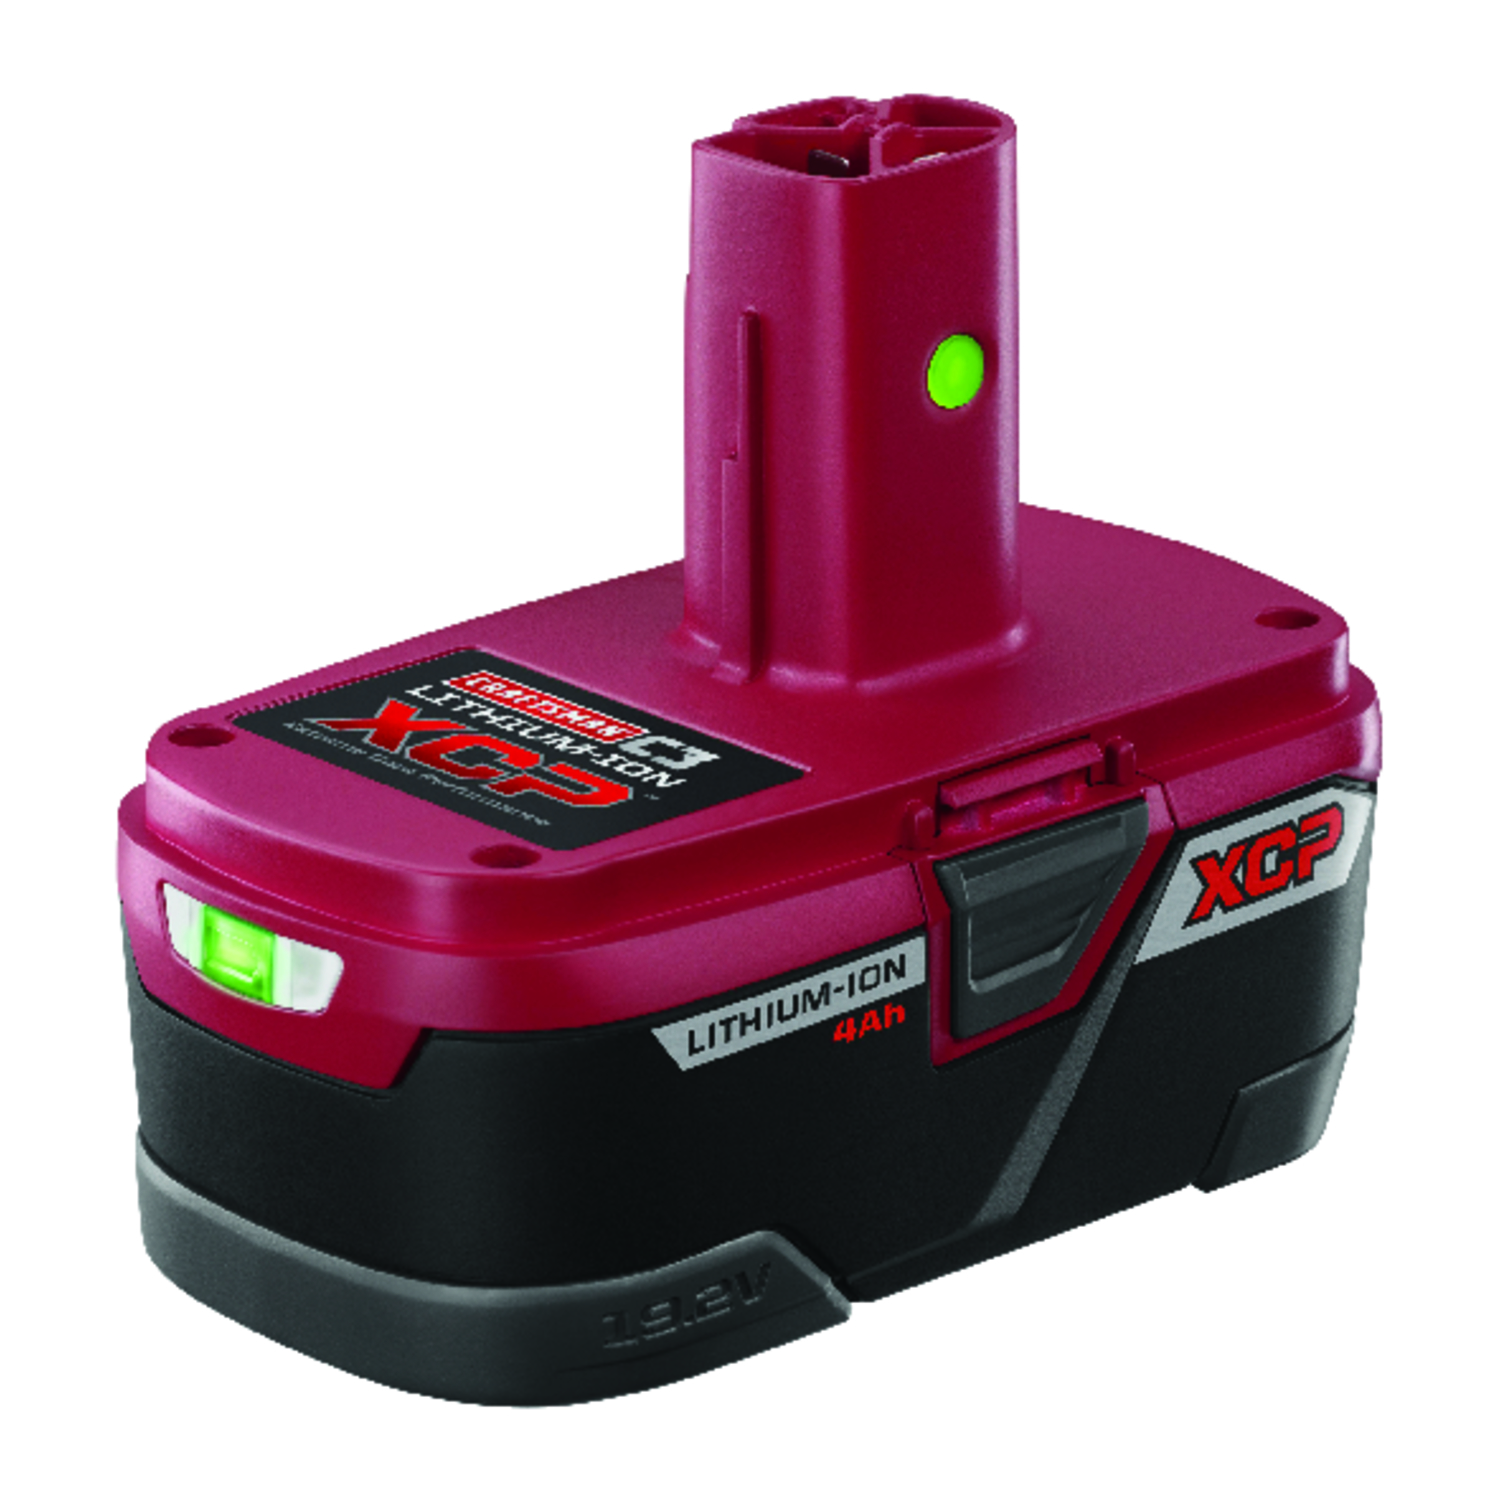 Craftsman  C3 XCP  19.2 volt 4 Ah Battery Pack  1 pc. Lithium-Ion